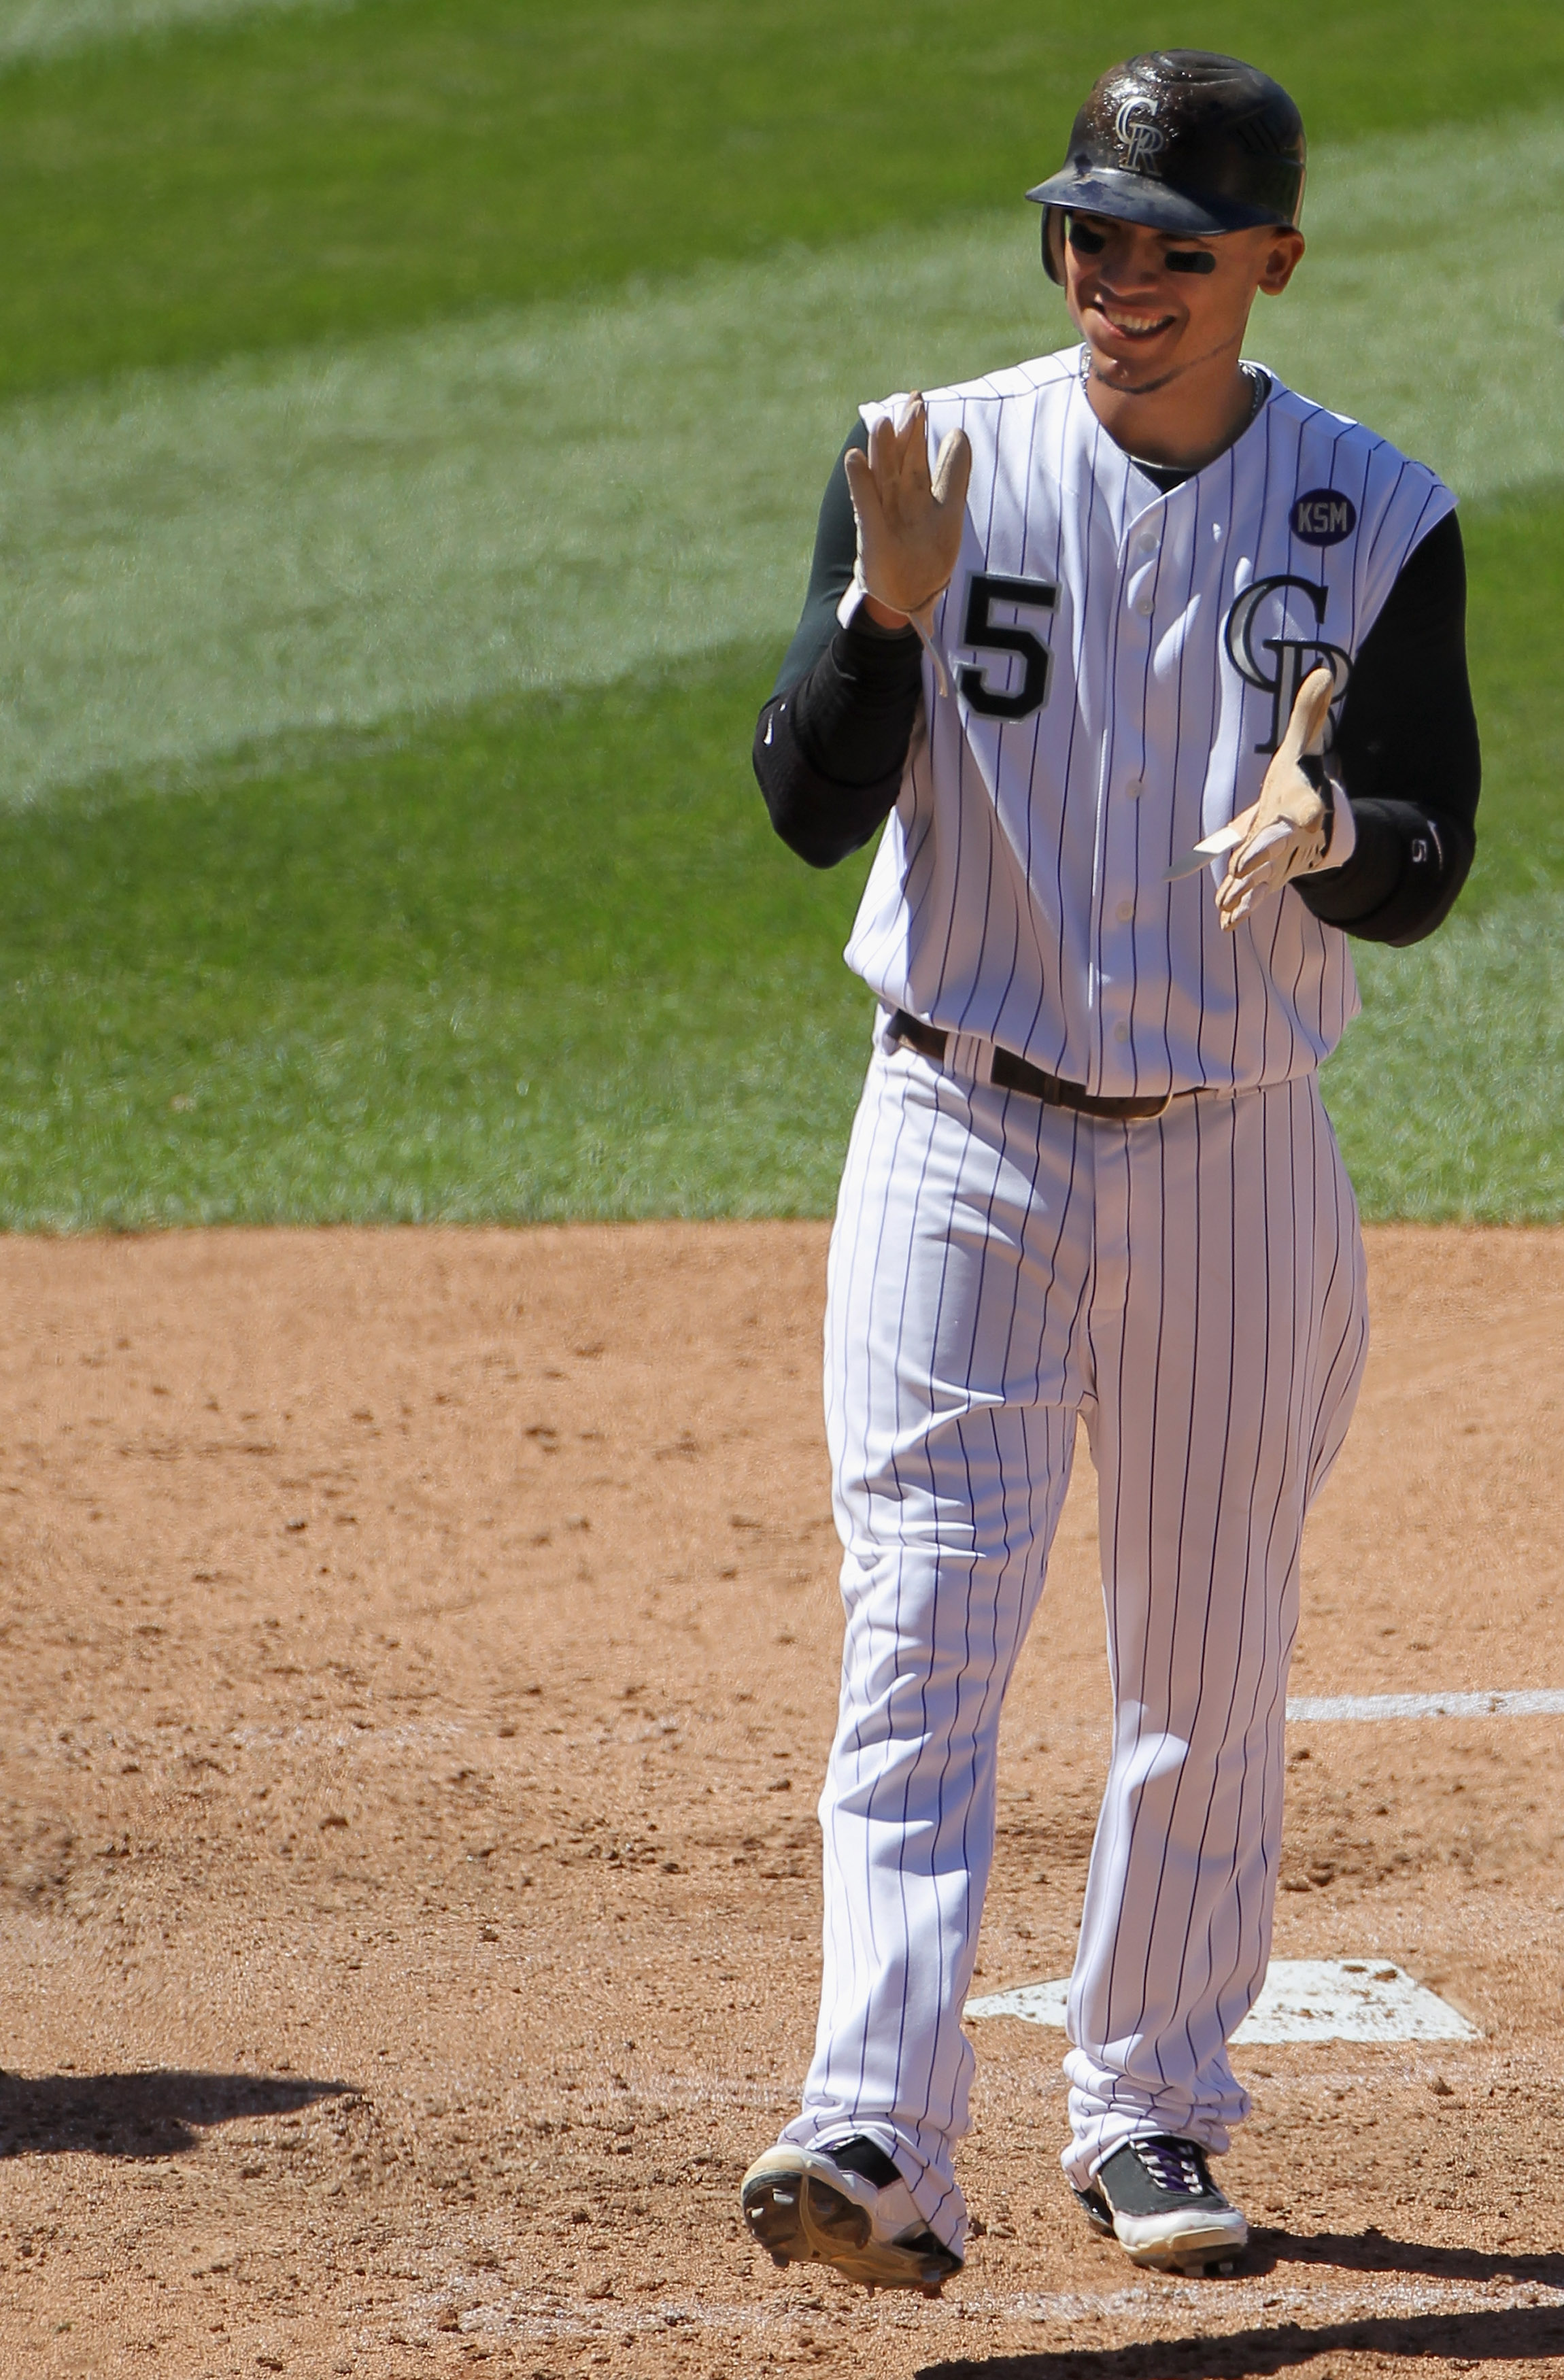 DENVER - SEPTEMBER 06:  Carlos Gonzalez #5 of the Colorado Rockies celebrates as he scores in the third inning against the Cincinnati Reds at Coors Field on September 6, 2010 in Denver, Colorado. The Rockies defeated the Reds 10-5.  (Photo by Doug Pensing